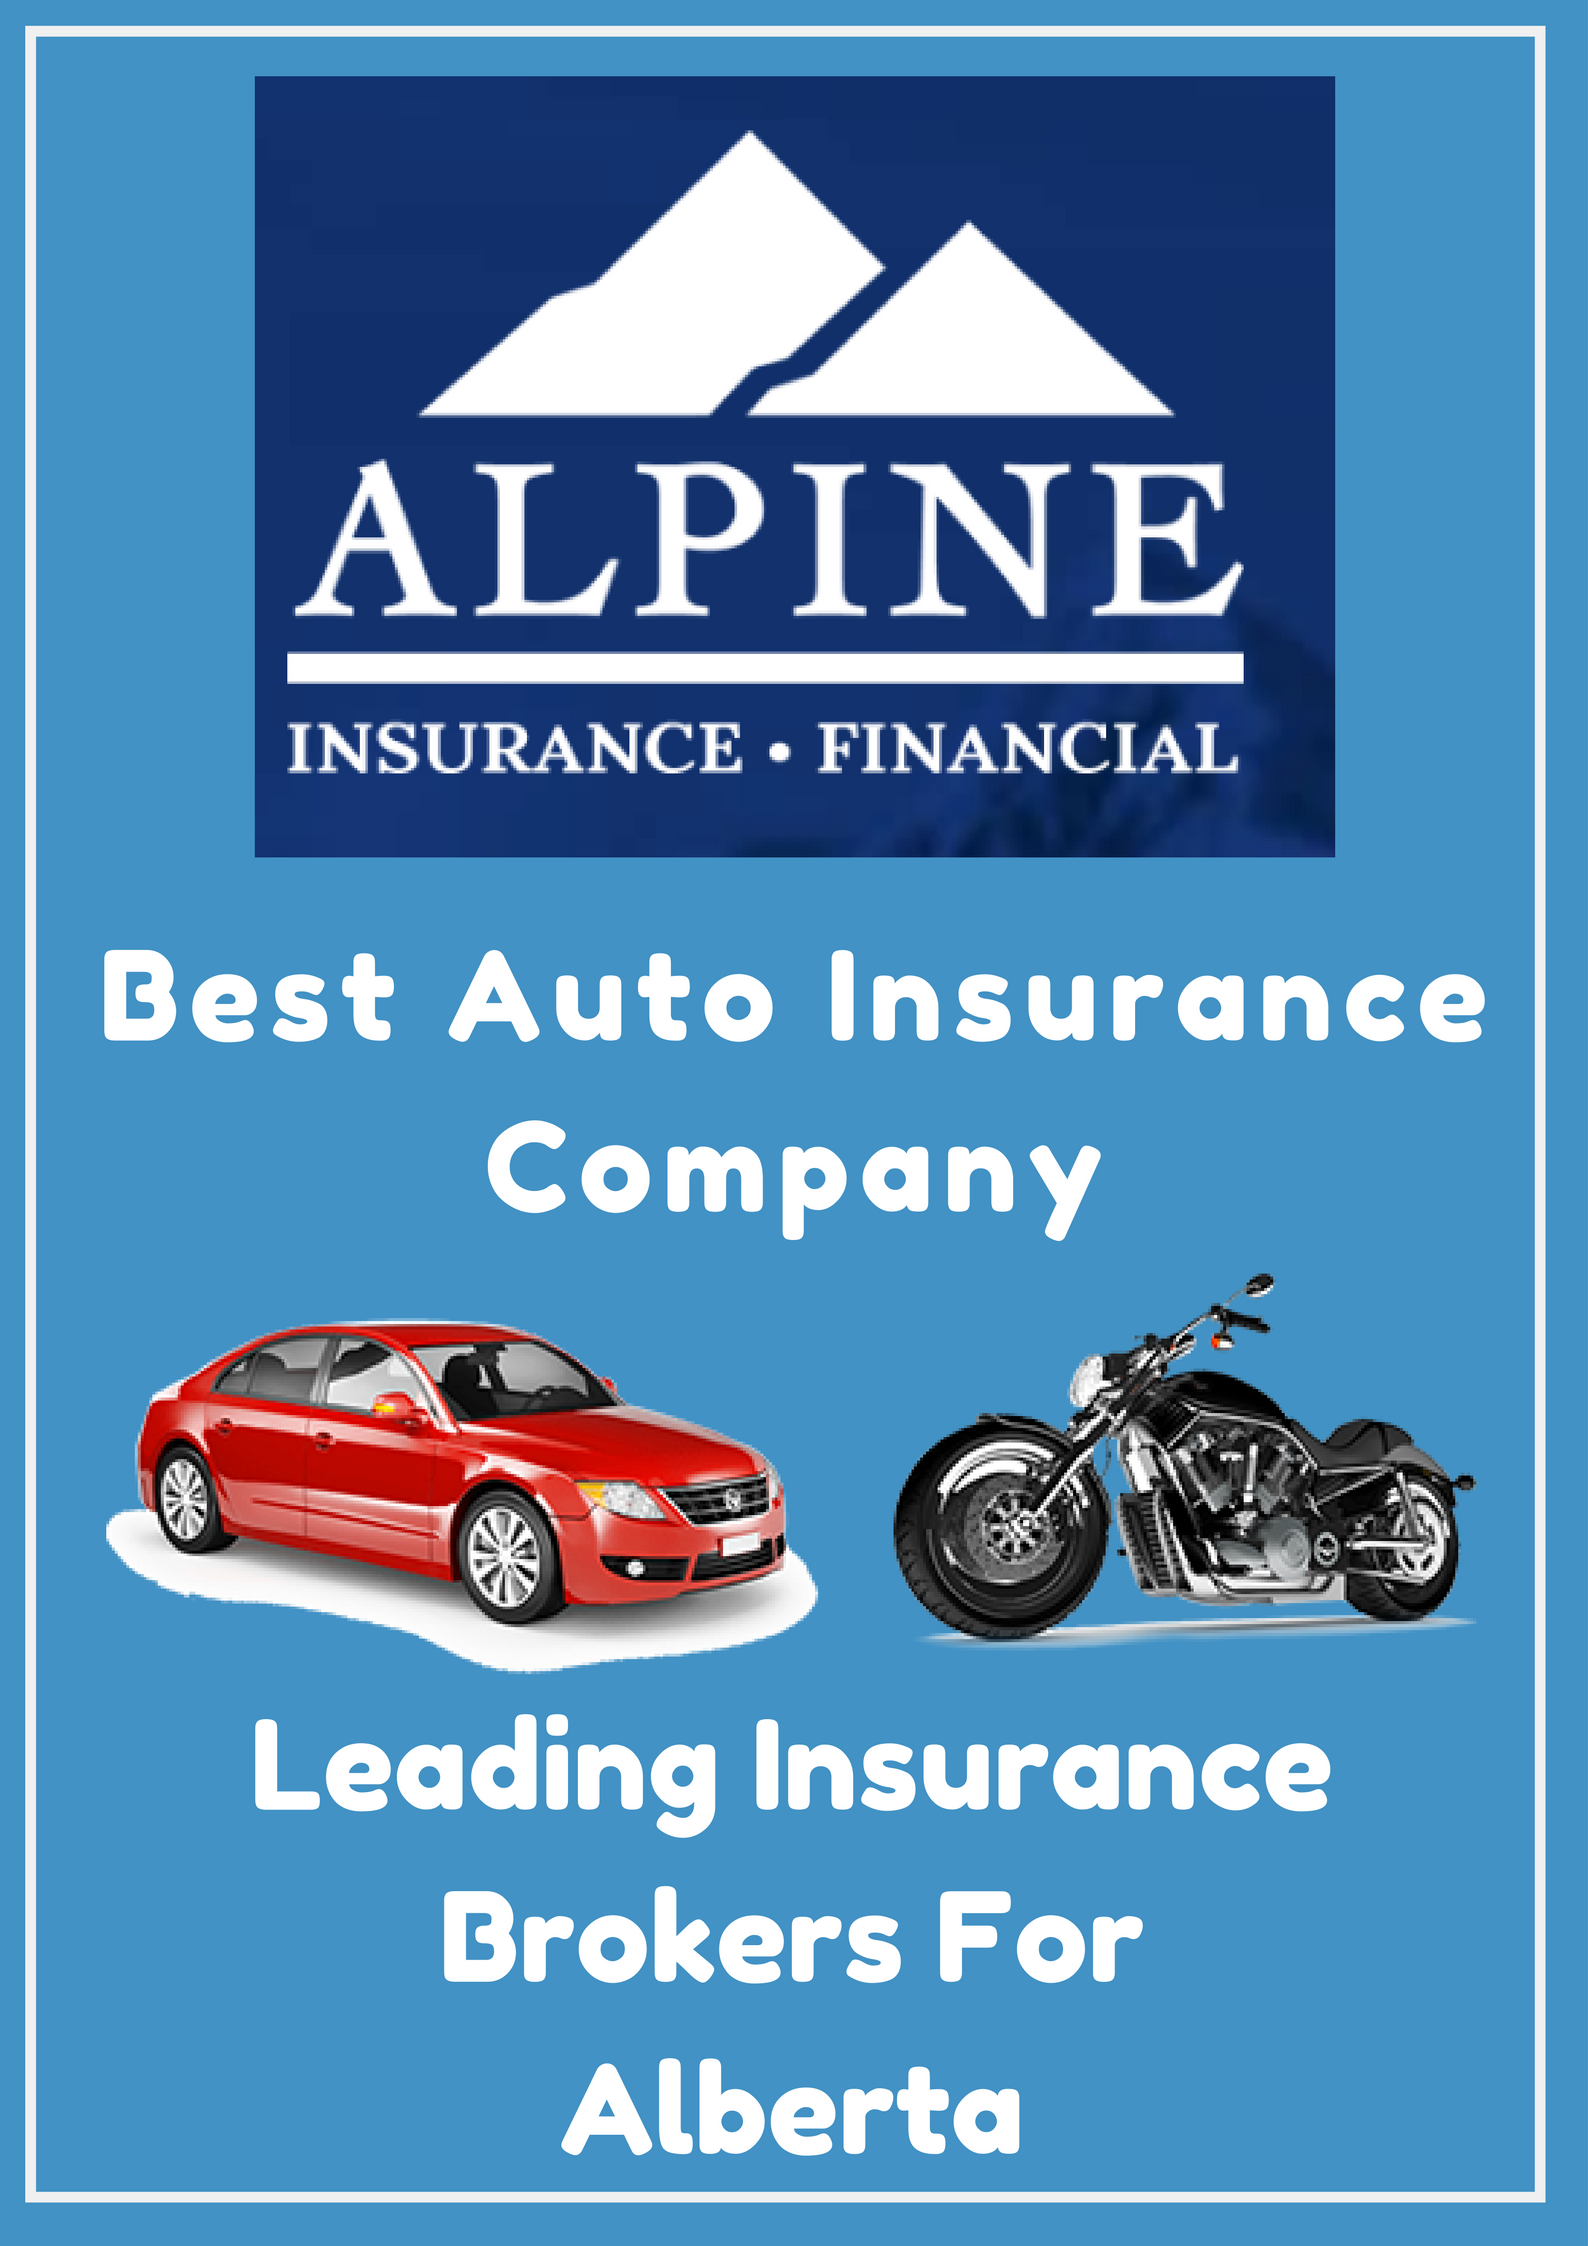 Home Car Insurance Brokers Car Insurance Insurance Broker